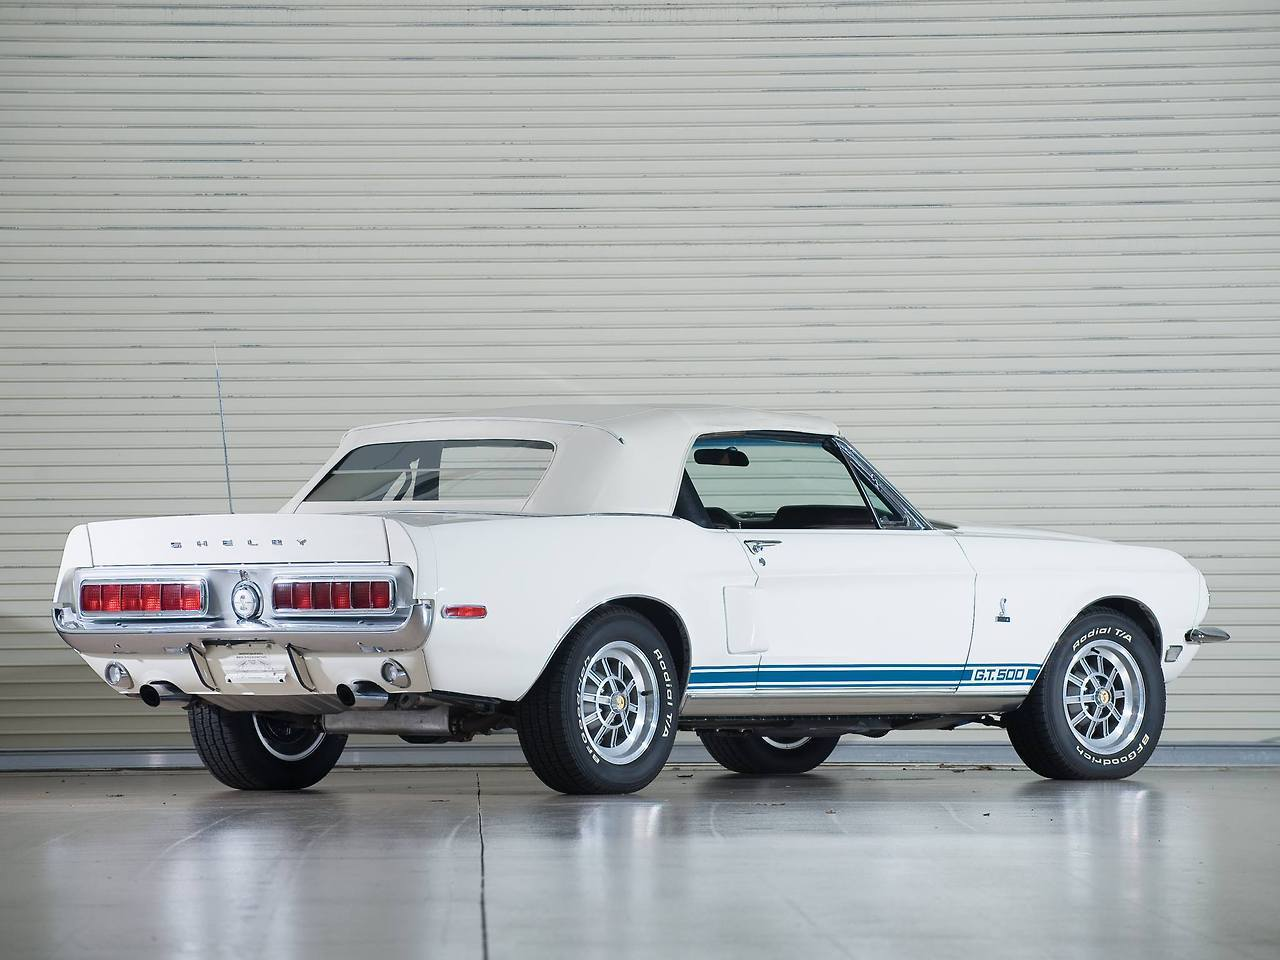 mustanglegendarymachine: